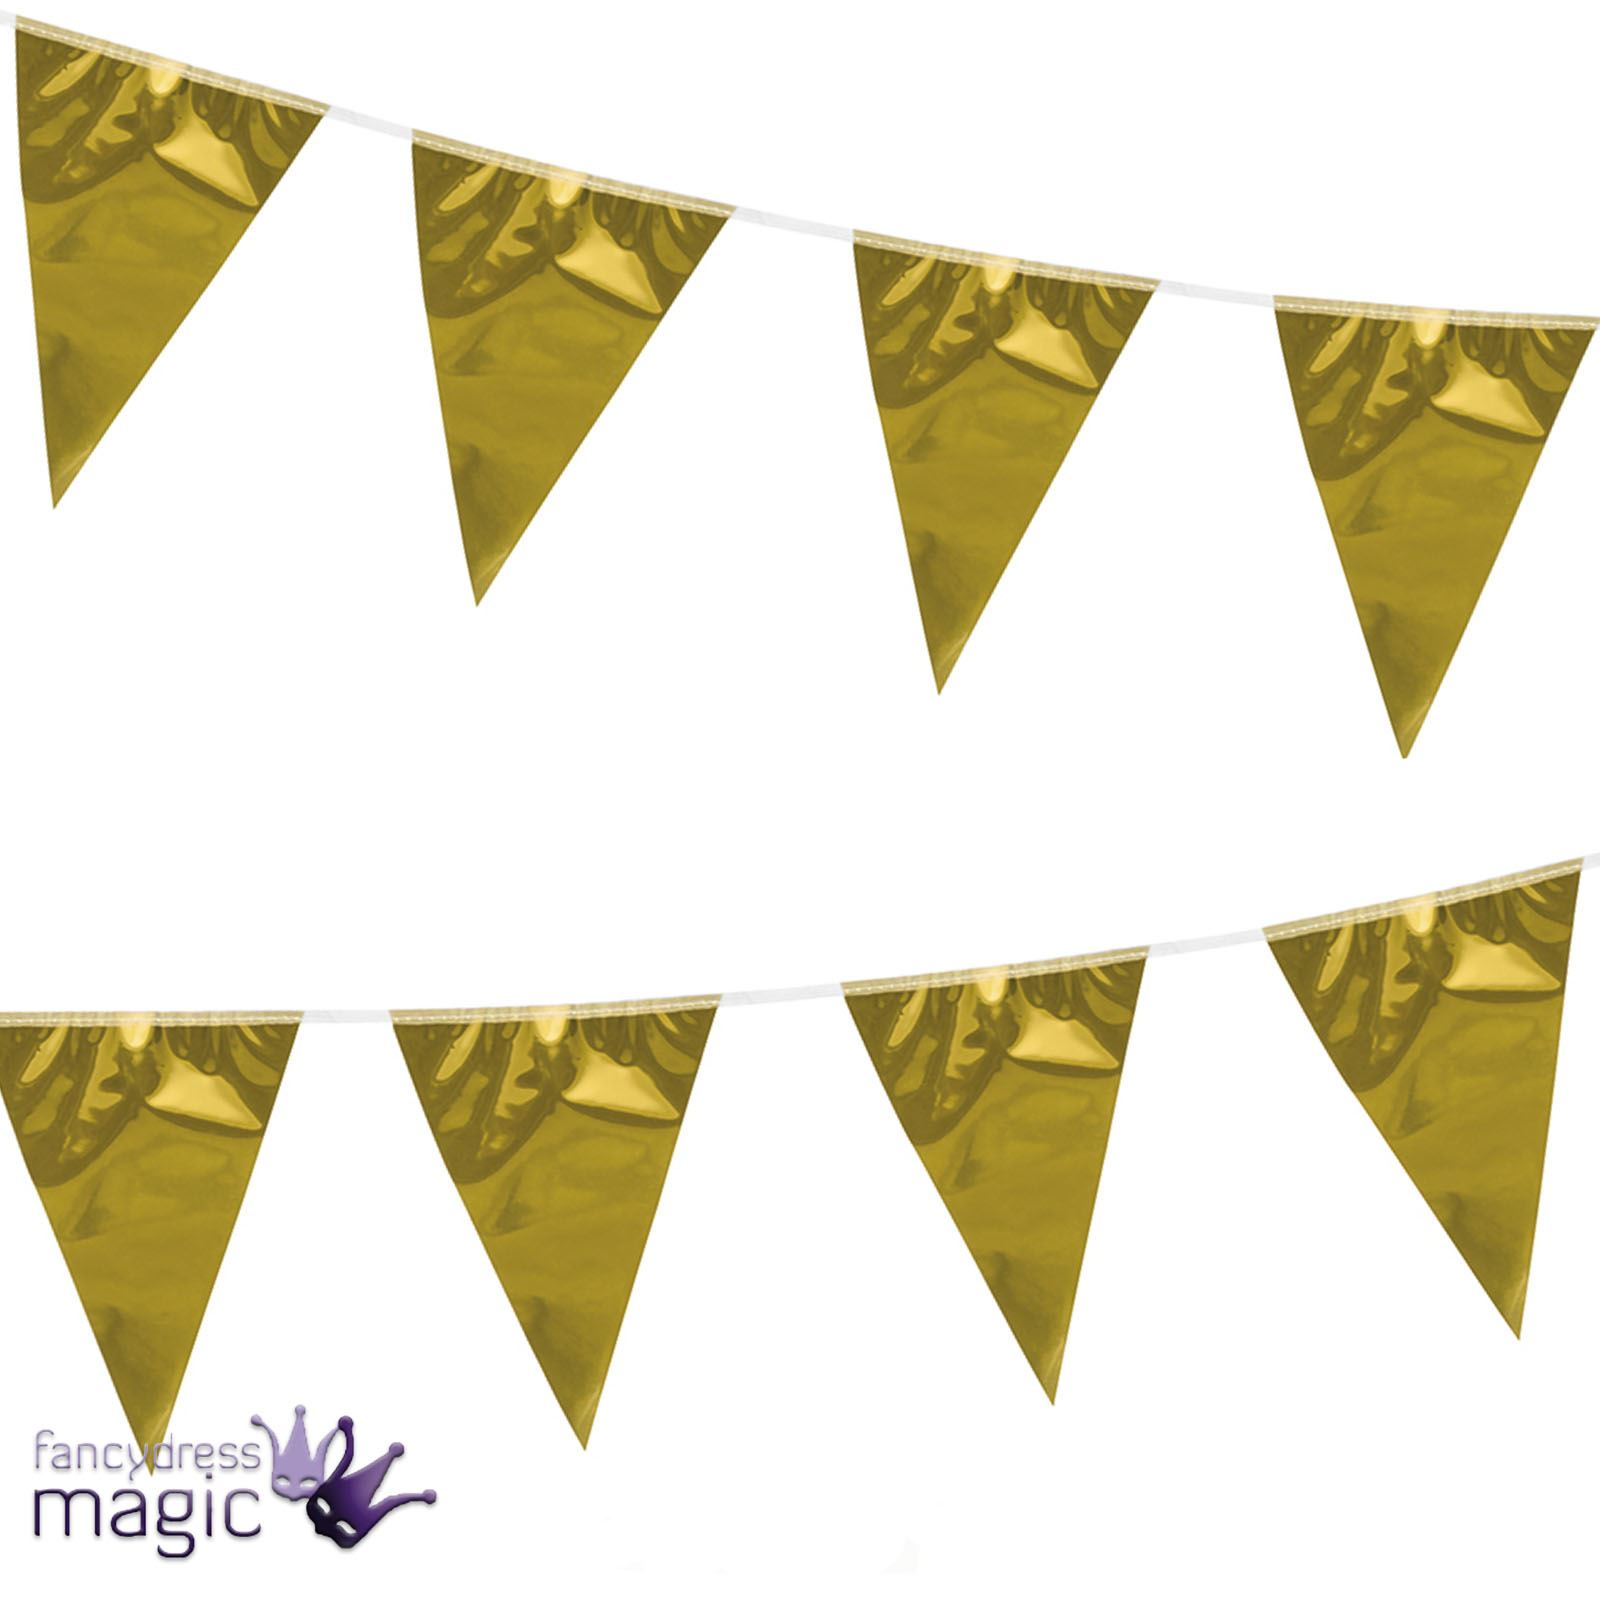 10m-Plastic-Bunting-Fete-Gala-Party-Banners-20-Flags-Giant-Indoor-Outdoor-Decor thumbnail 14